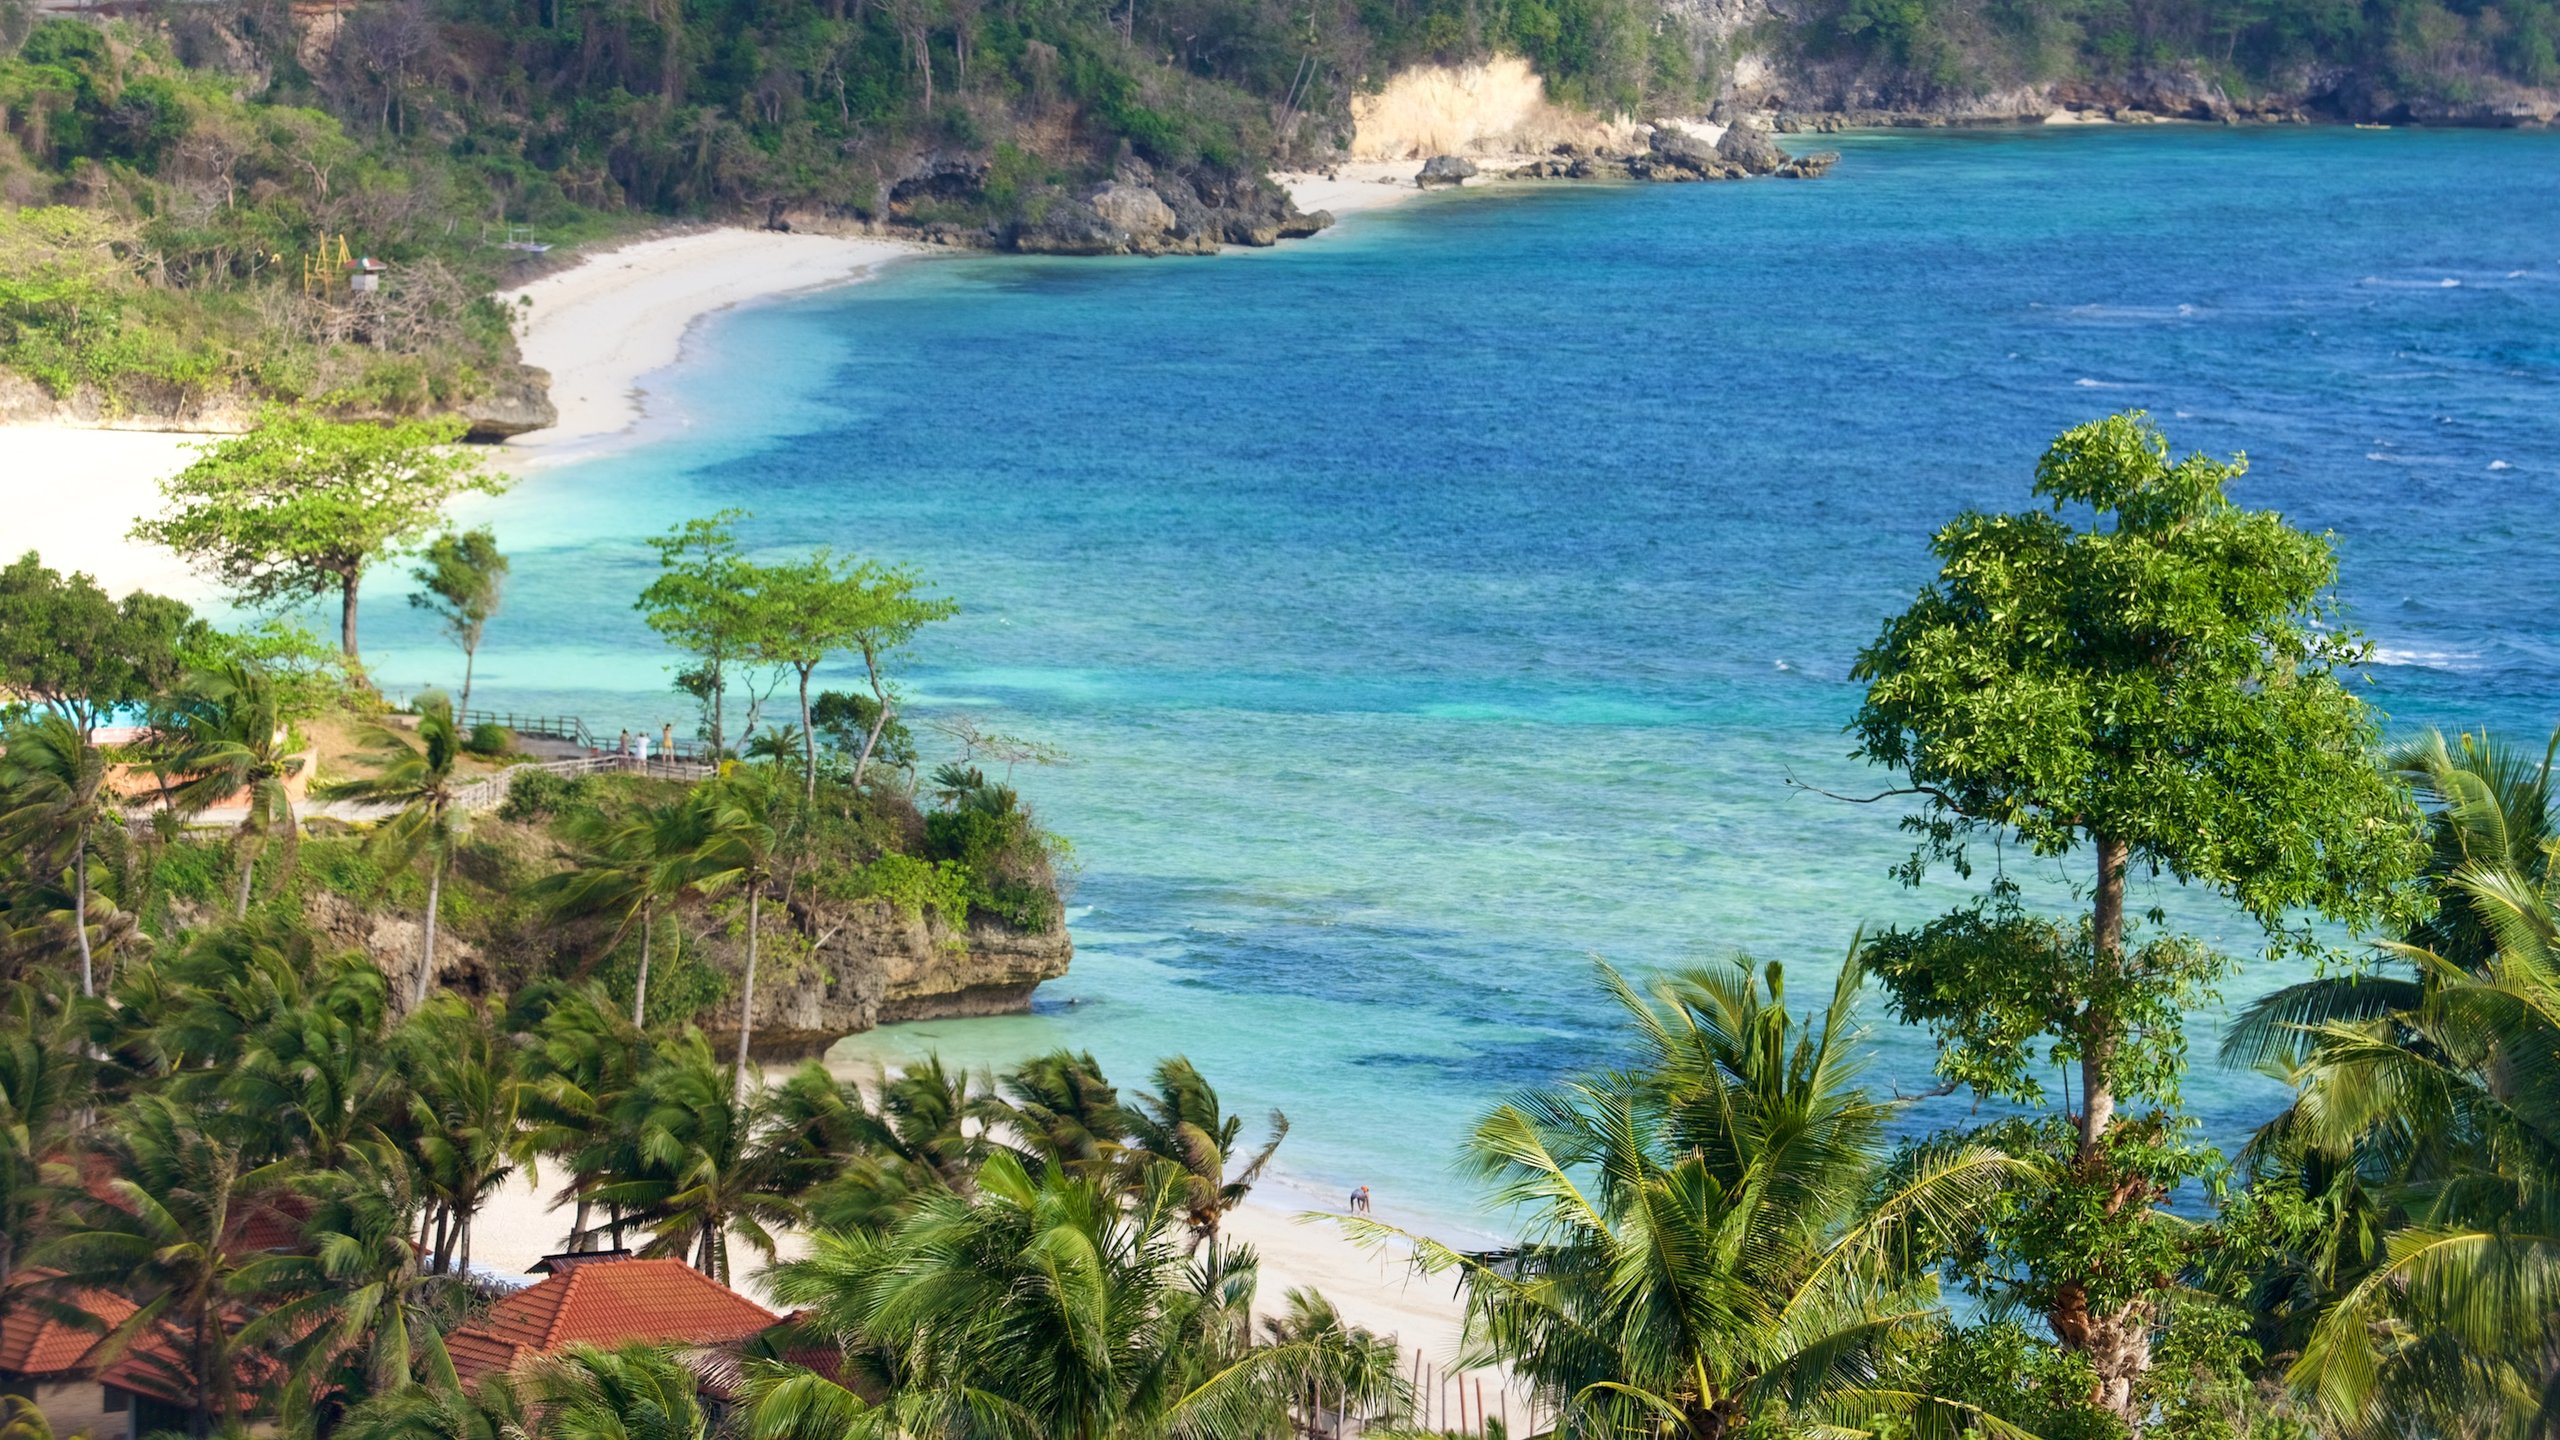 Ascend to the highest peak on Boracay Island for excellent views of the beaches and dense forests that decorate the undulating terrain.